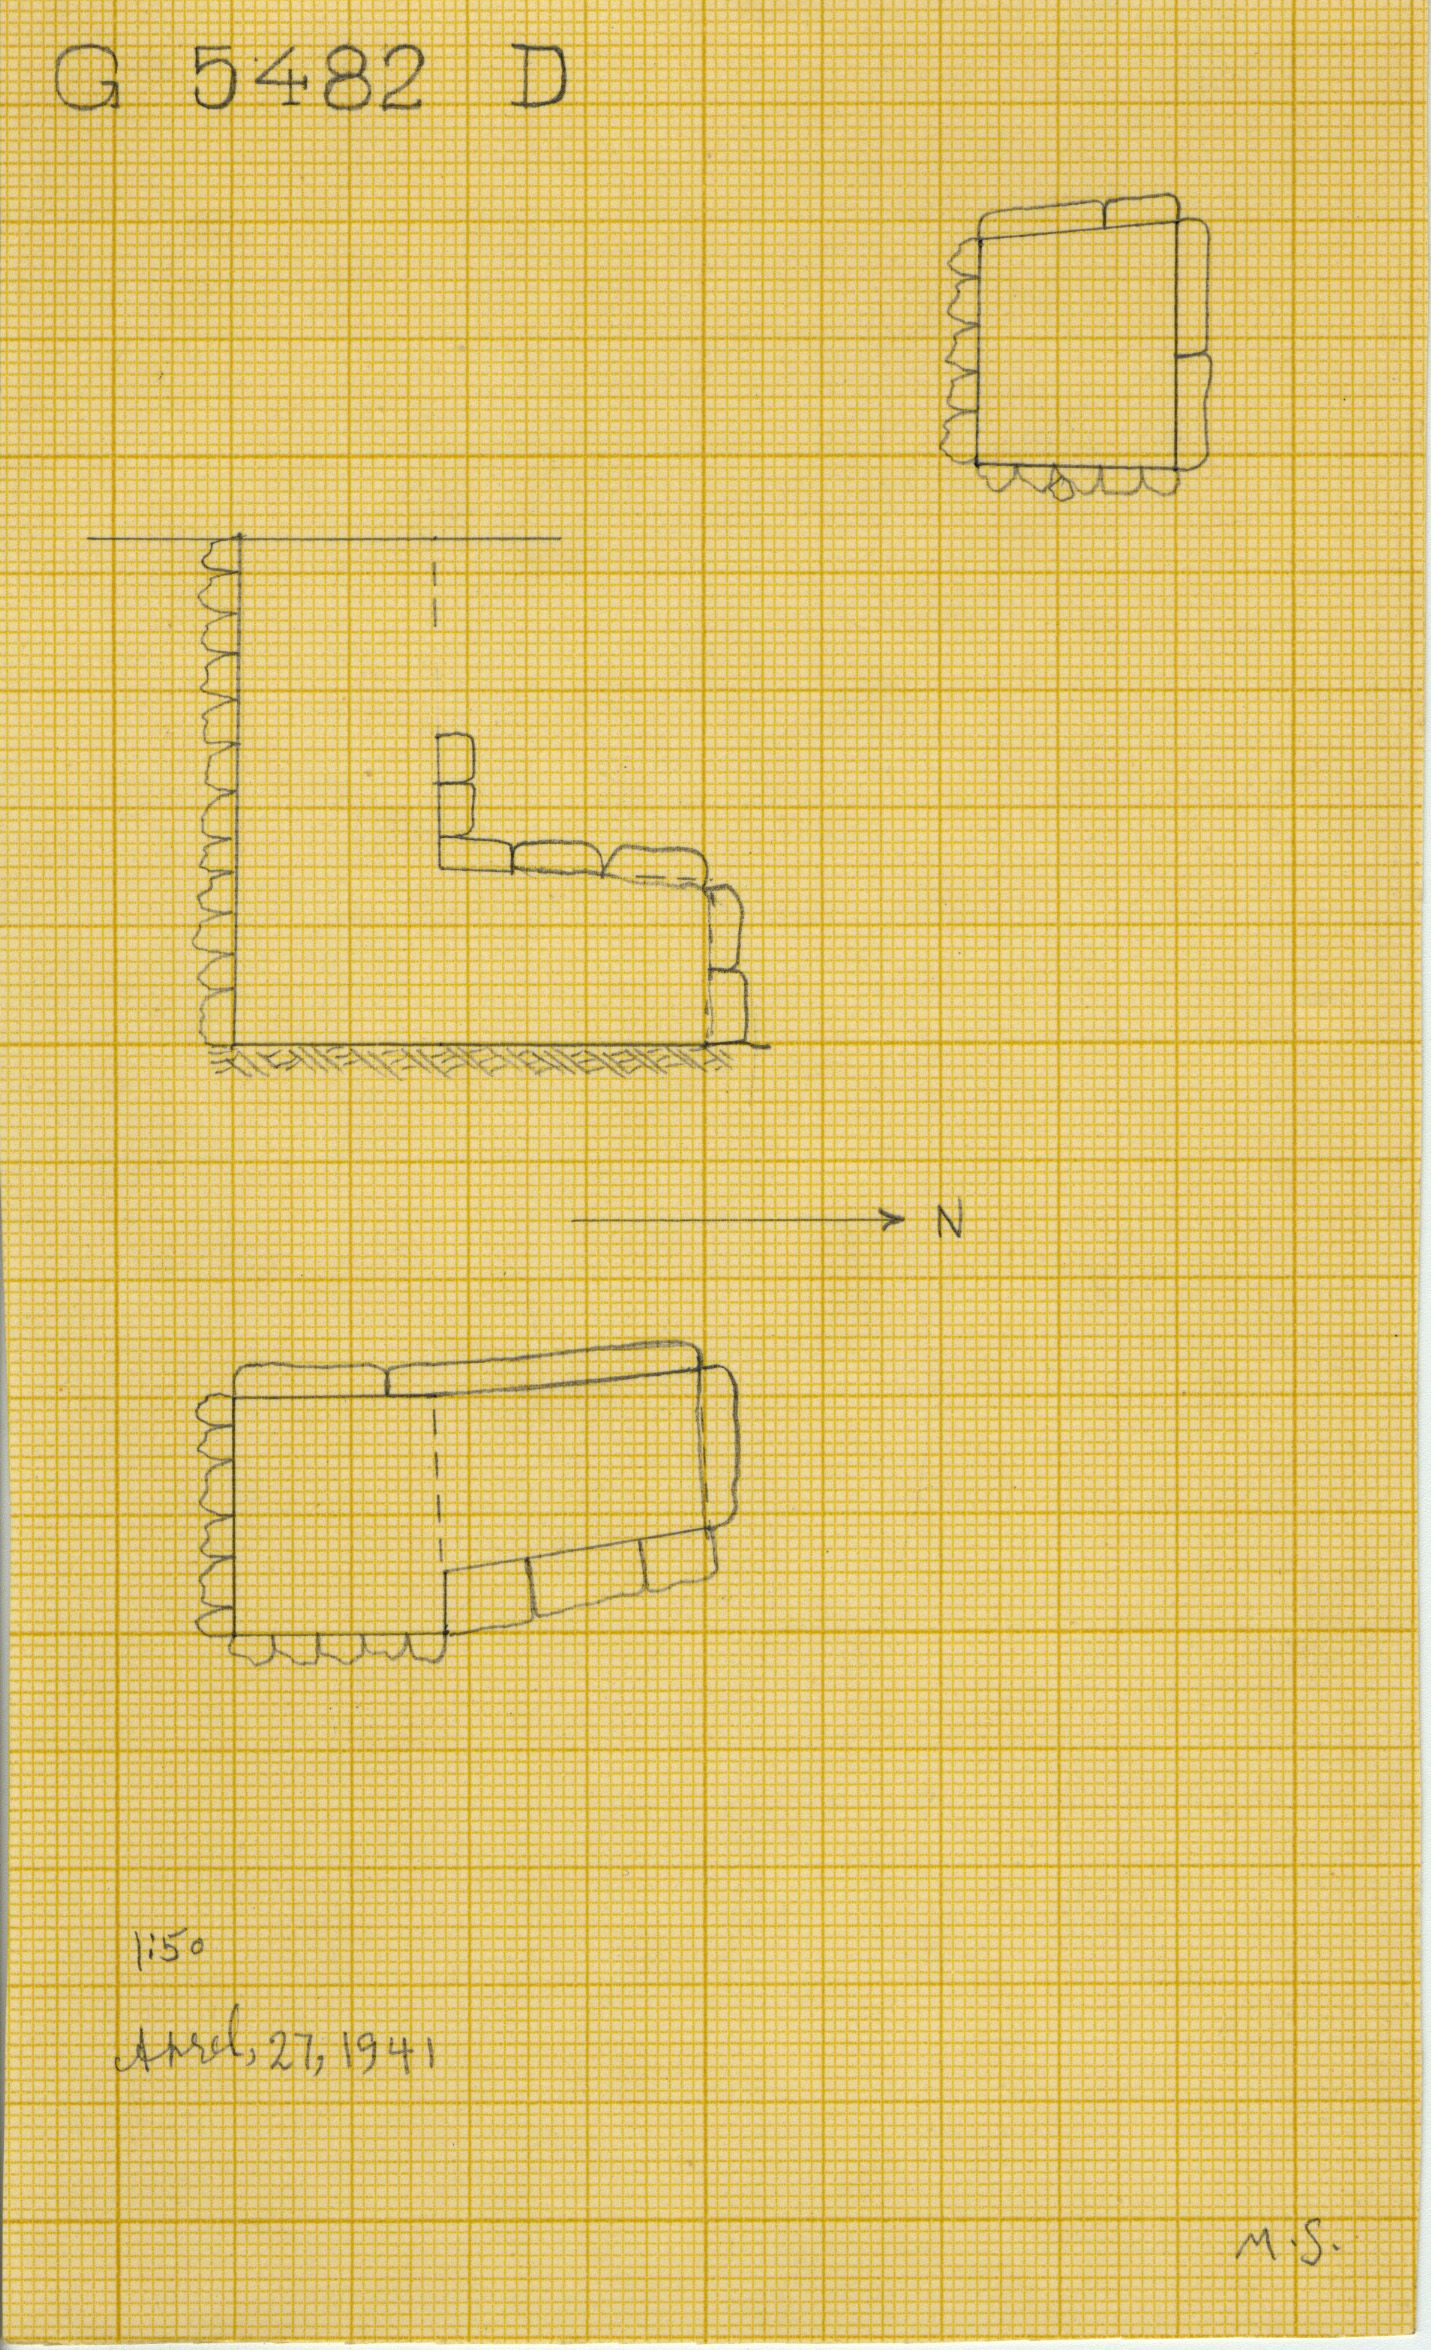 Maps and plans: G 5482, Shaft D